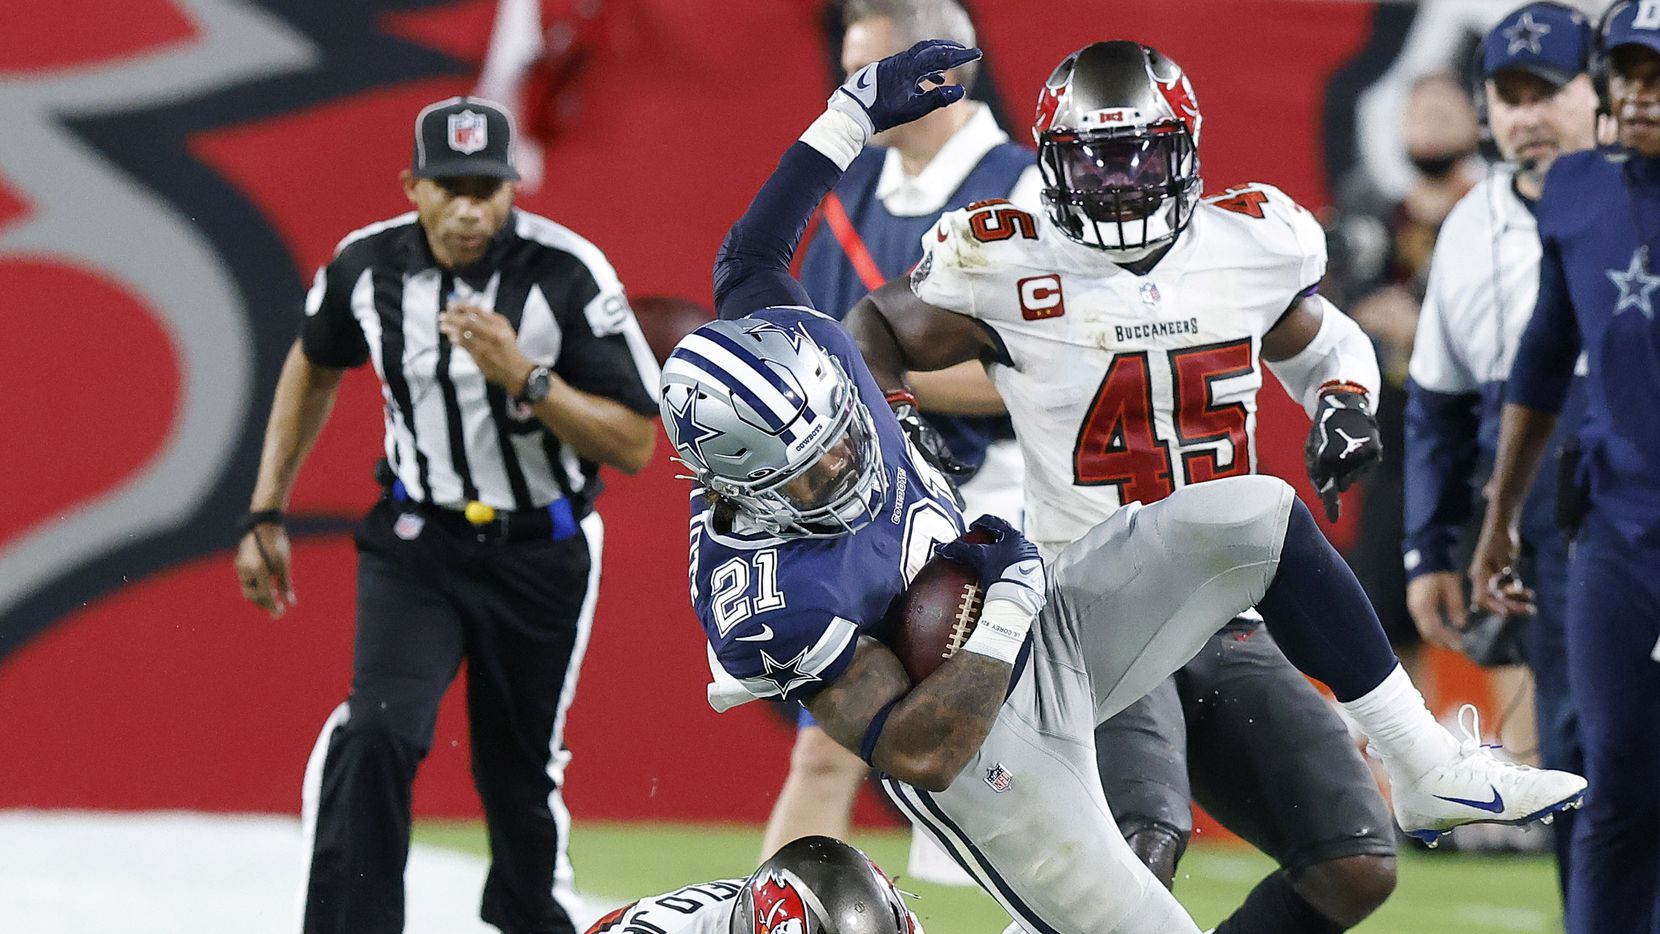 Dallas Cowboys running back Ezekiel Elliott (21) is knocked out of bounds by Tampa Bay Buccaneers safety Antoine Winfield Jr. (31) during a third quarter run at Raymond James Stadium in Tampa, Florida, Thursday, September 9, 2021. The Cowboys faced the Tampa Bay Buccaneers in the NFL season opener.